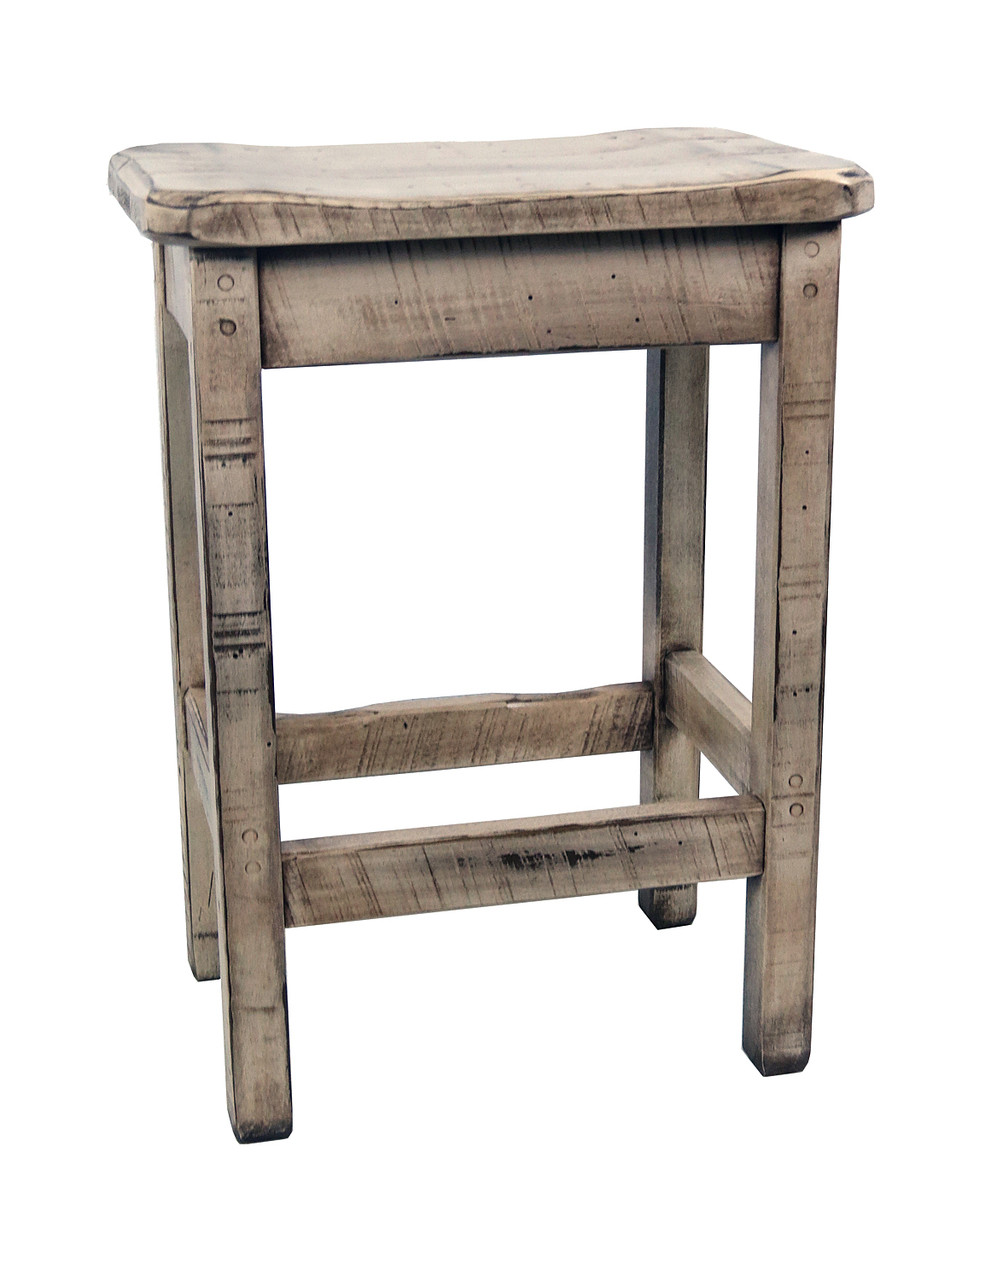 Farmhouse Distressed White Glazed Bar Stools 30 Scooped Seat